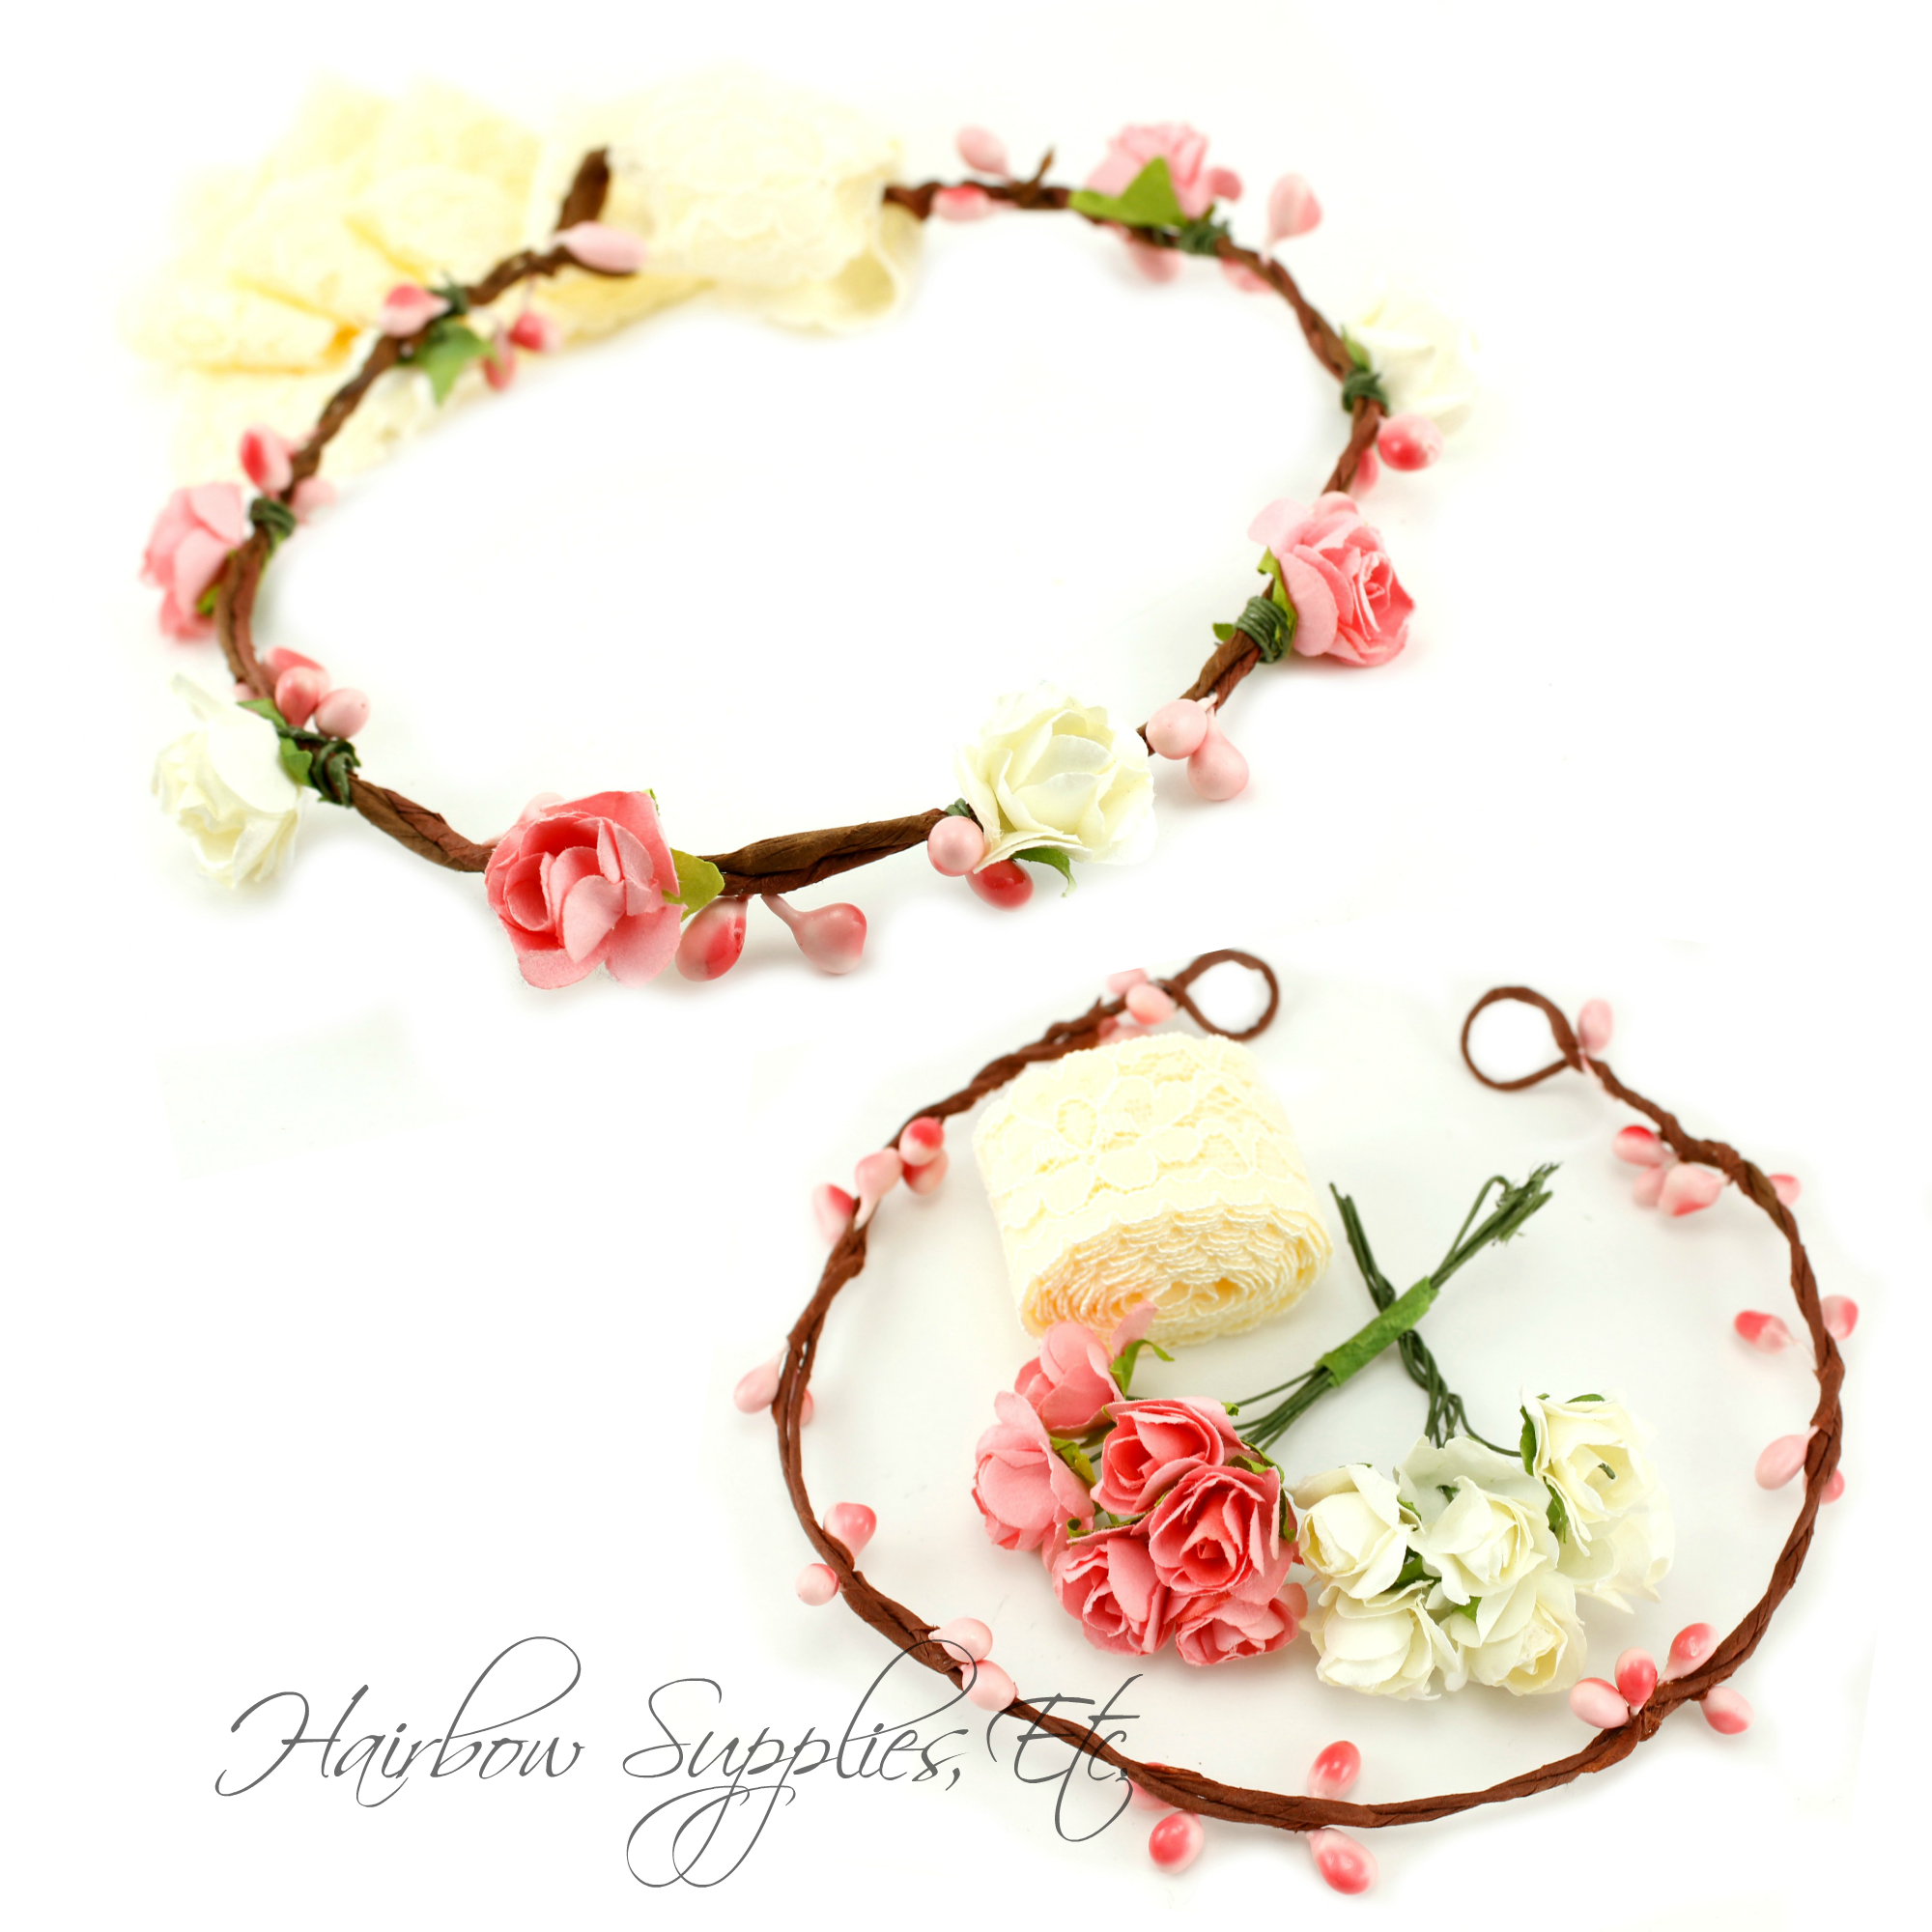 Diy pink and ivory floral crown kit hse embellishments pinterest diy pink and ivory floral crown kit this pink and ivory floral crown kit is so gorgeous this kit can be used to create unique and custom floral crowns izmirmasajfo